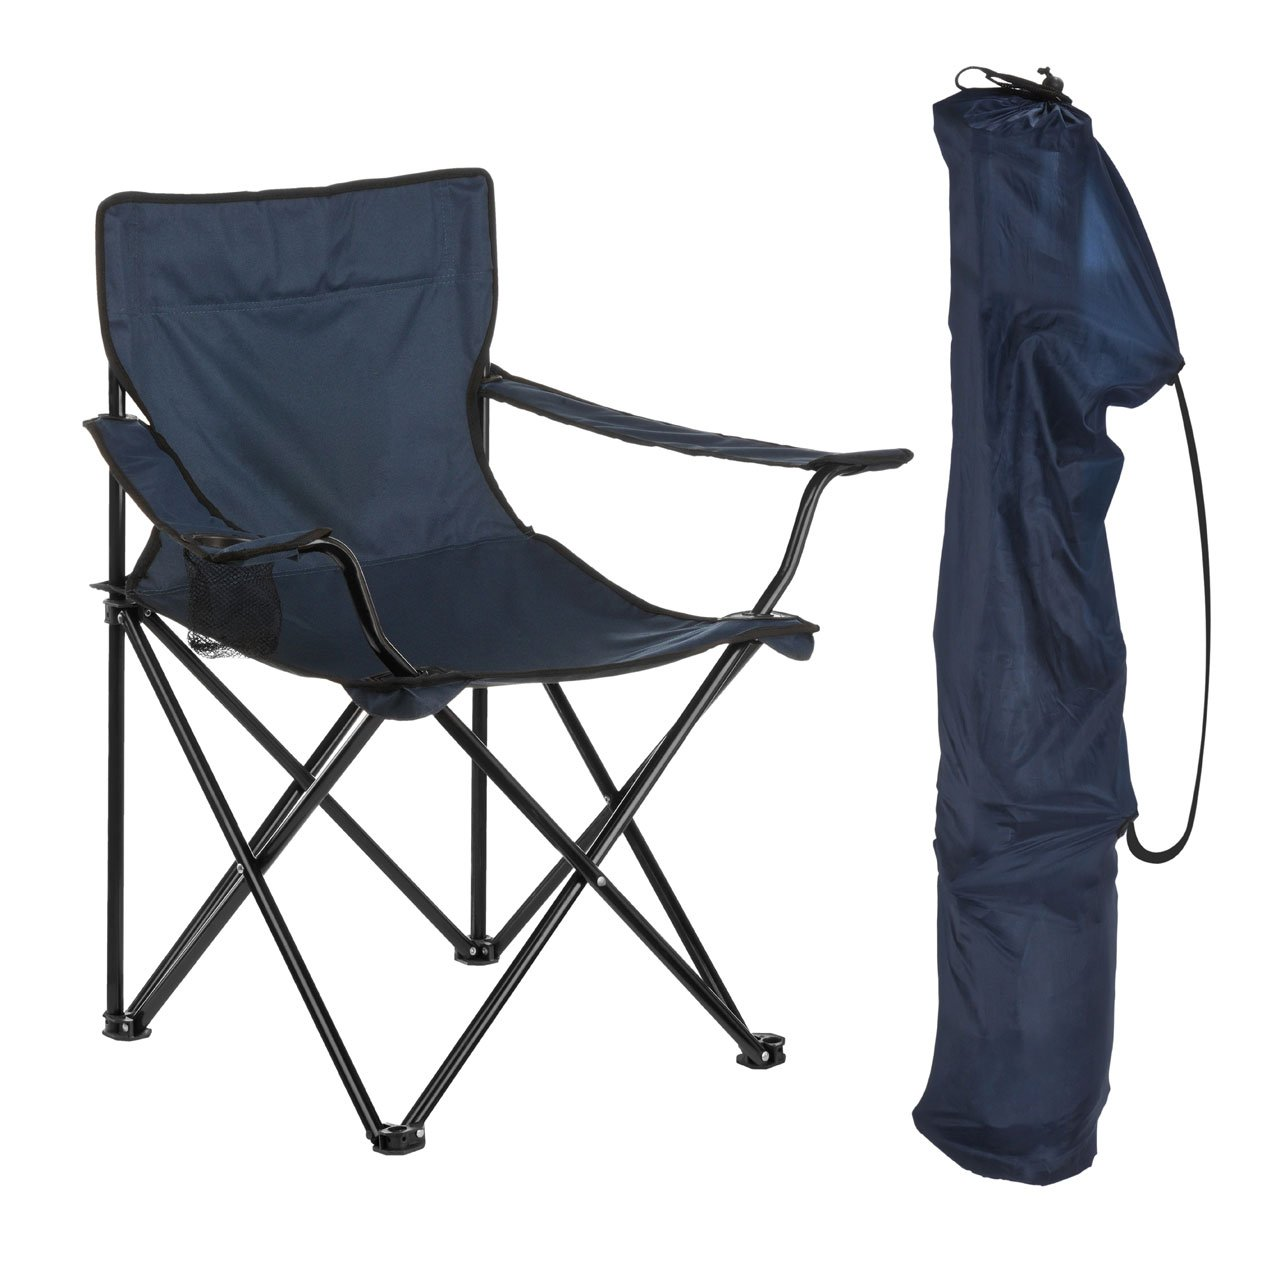 equipment chair camping folding outdoor wayfair pdx chairs reviews coreequipment core